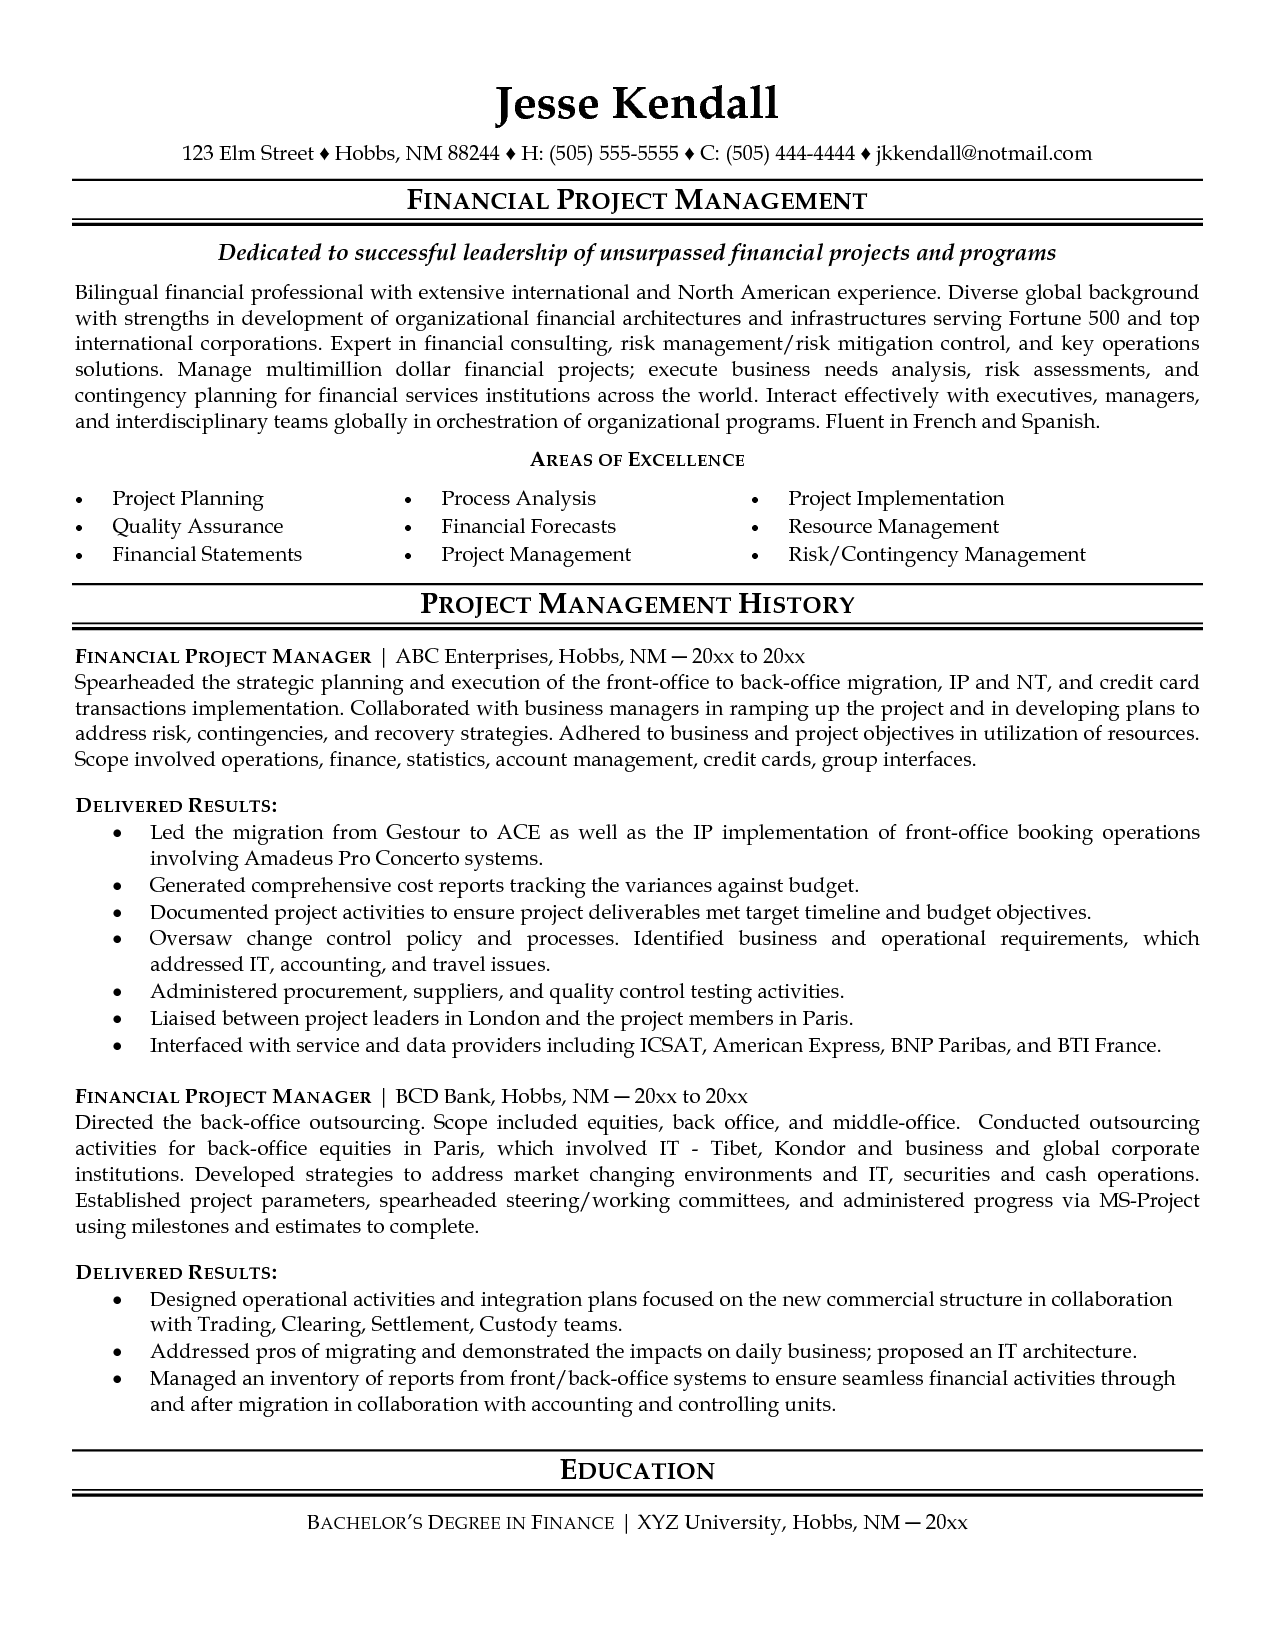 Resume Construction Project Coordinator Resume Sample project officer sample resume mri field service engineer cover letter coordinator latter caa5e93ce741c65a4be21e7bcffe26a6 575334921125493644